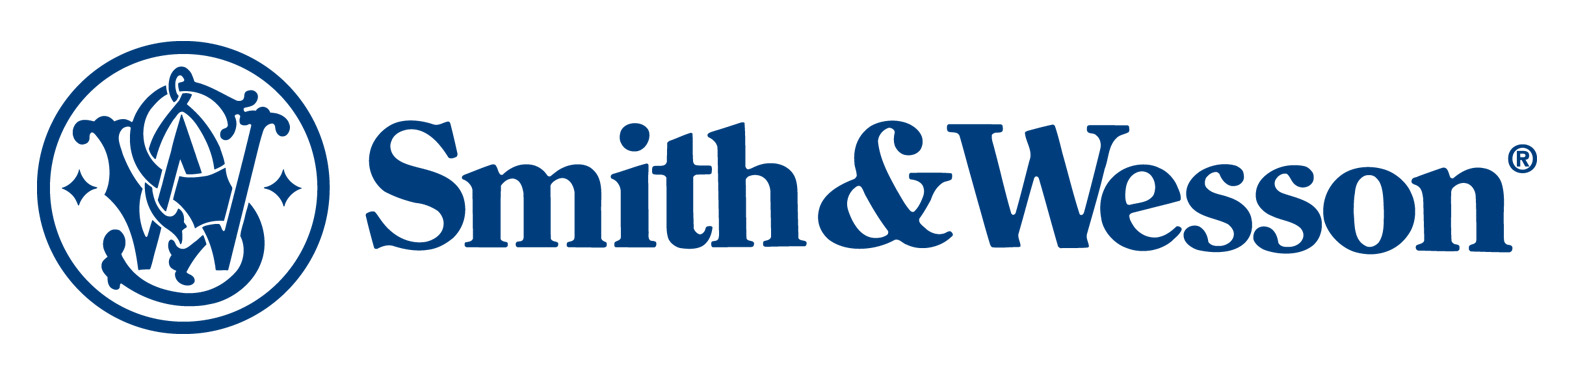 Smith & Wesson | TargetSportsUSA.com